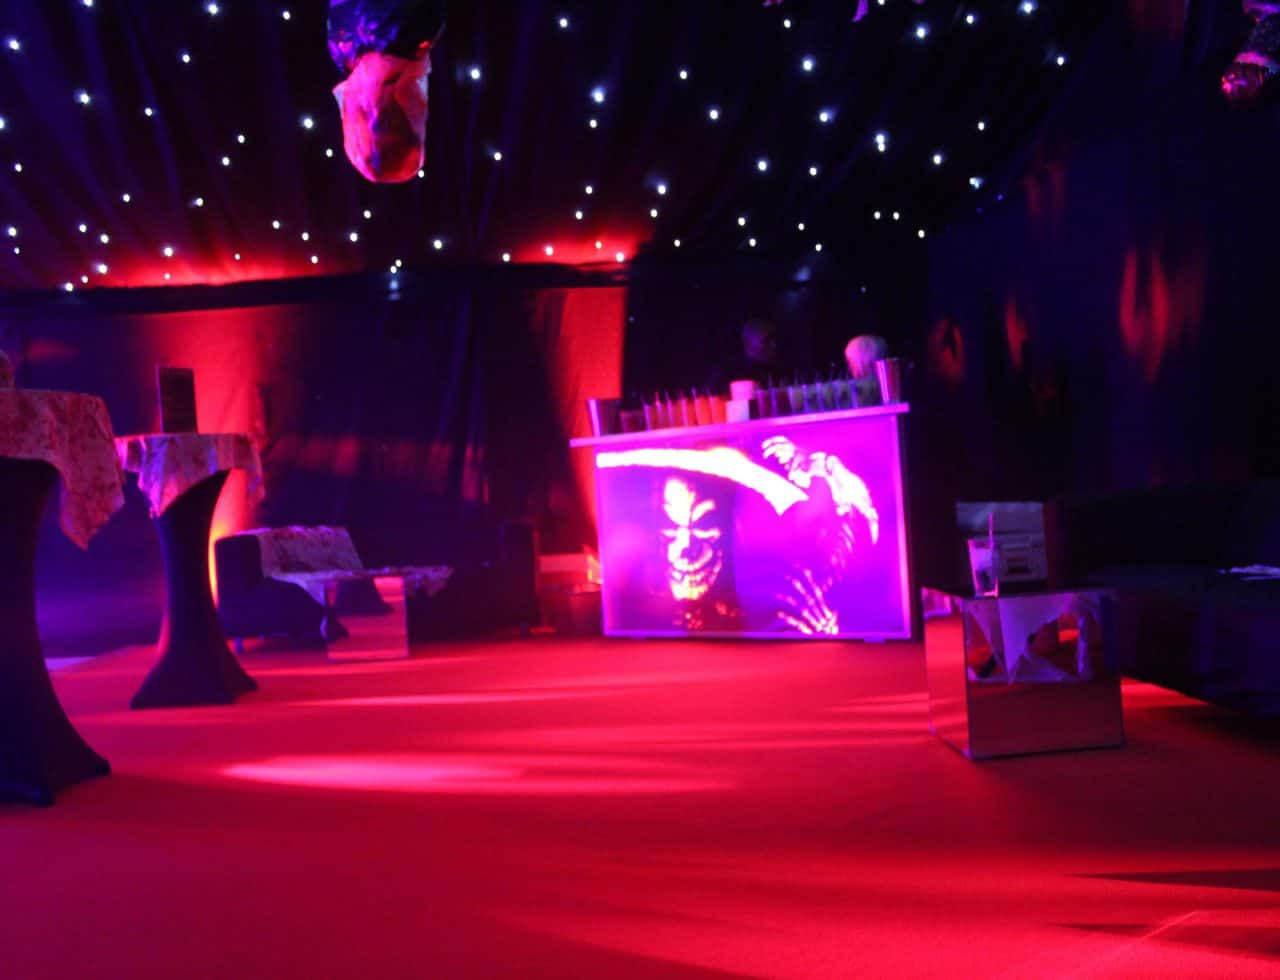 Halloween Dance Floor Design we created for our client's Halloween themed event.